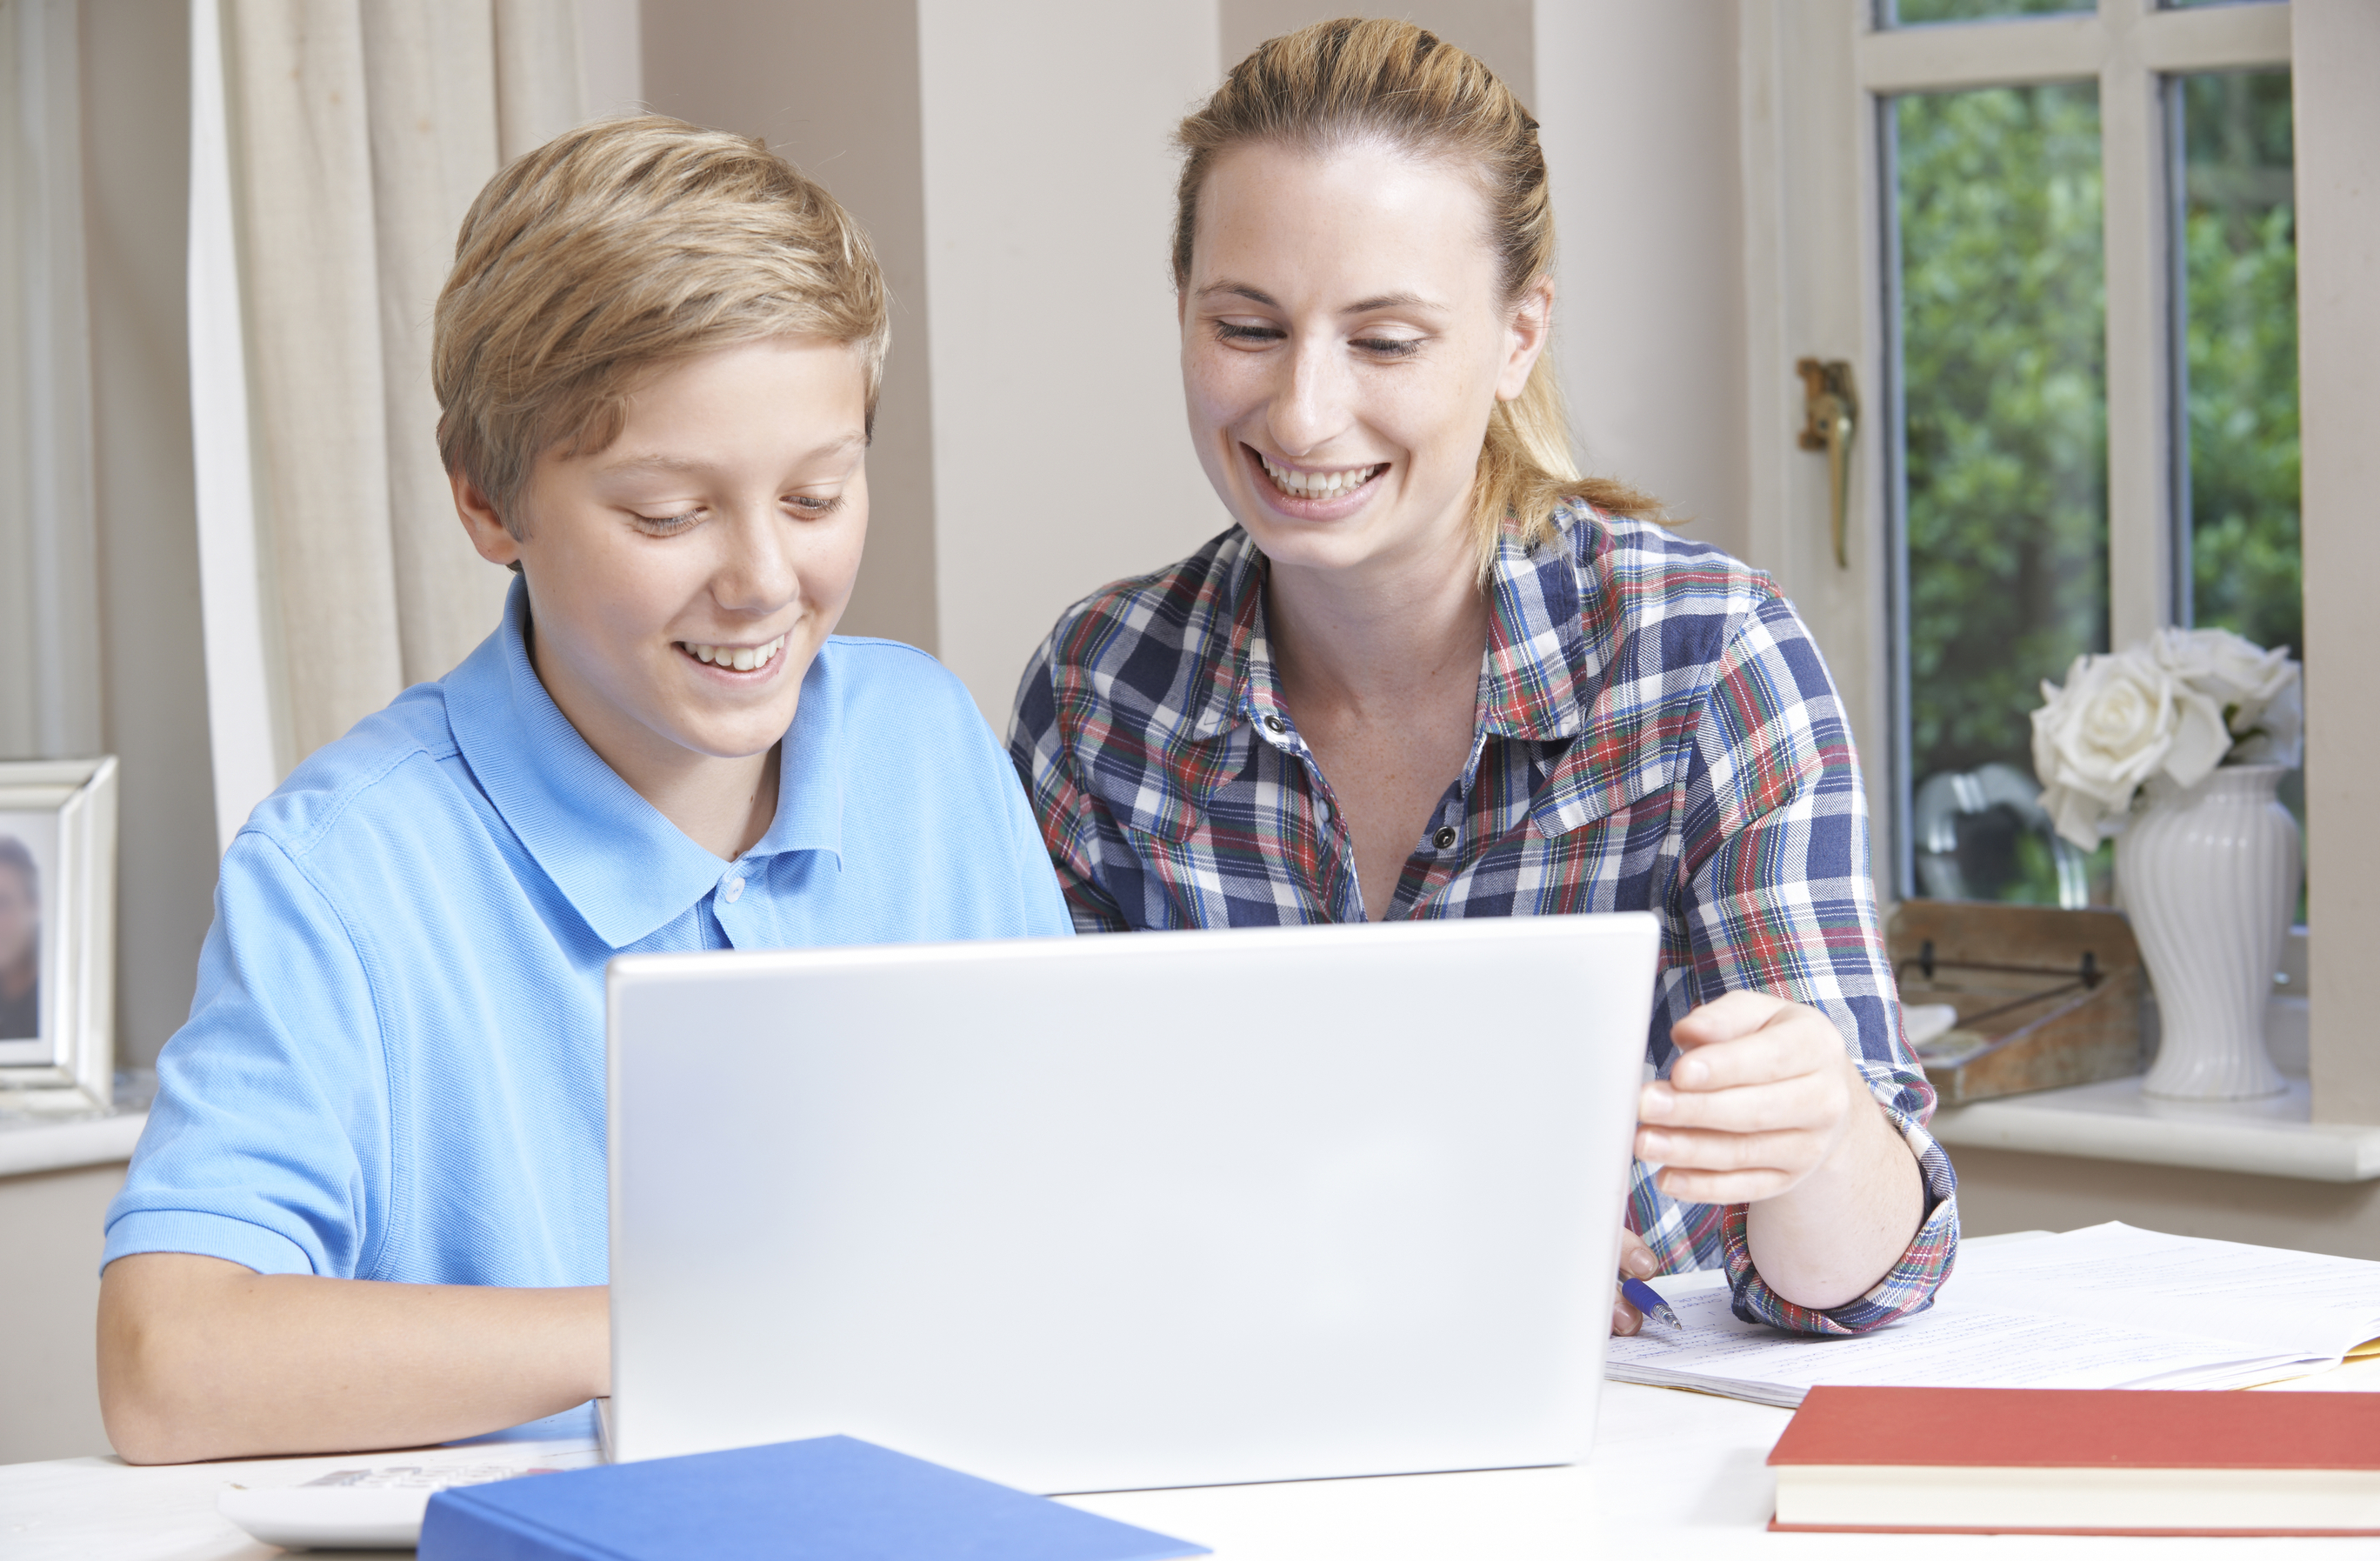 home essay example good friend